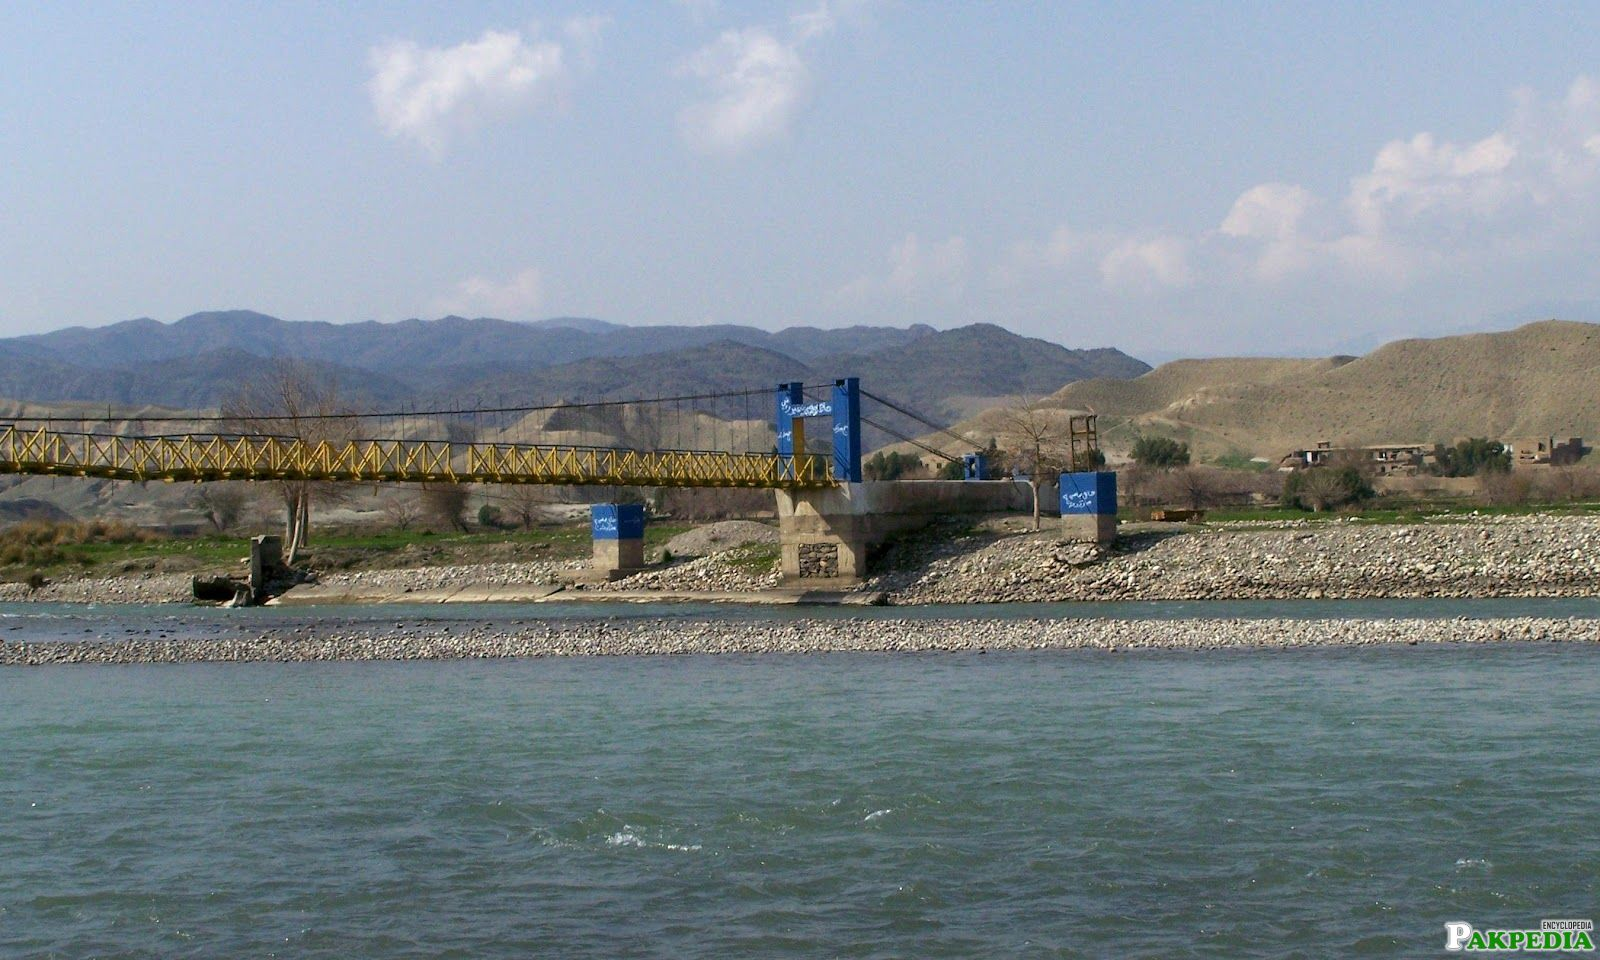 Kabul River Bridge